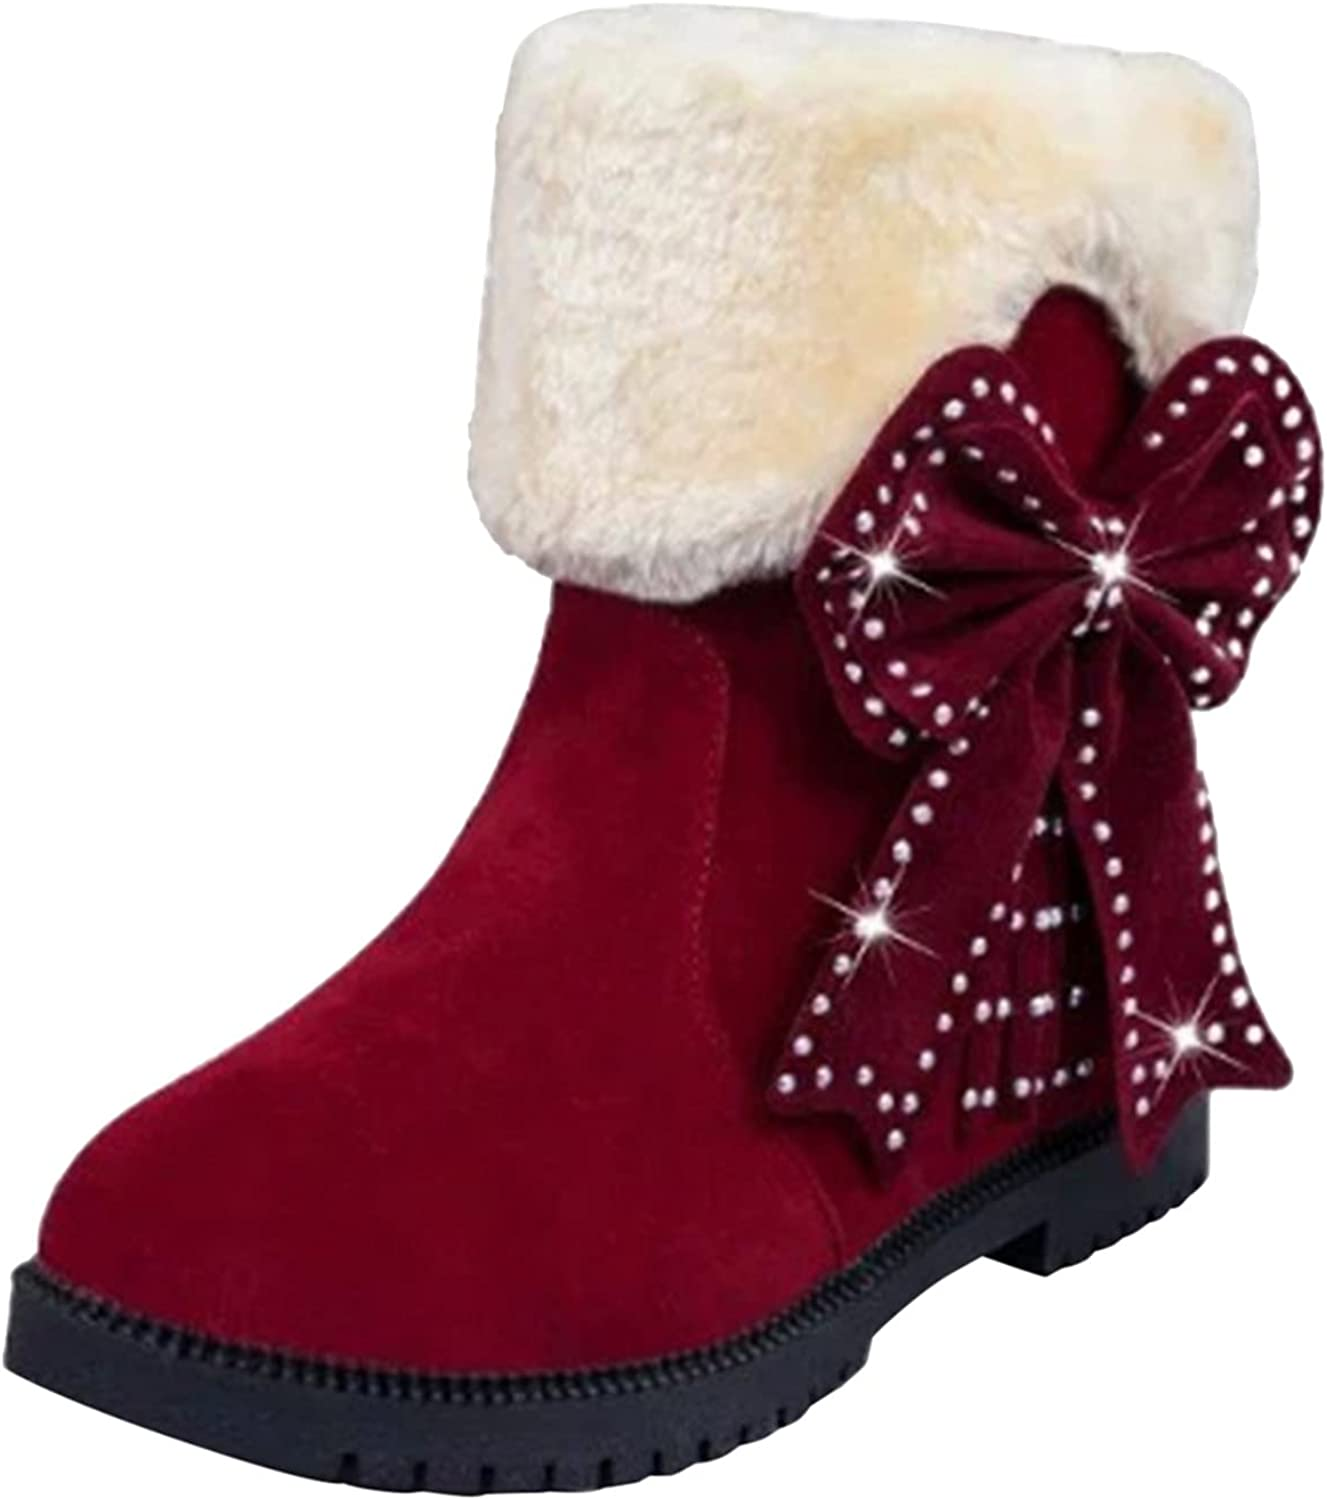 PMUYBHF Womens Snow Boots Winter Fur Lined Ankle Boots Ladies Side Zipper Warm Booties Walking Boots